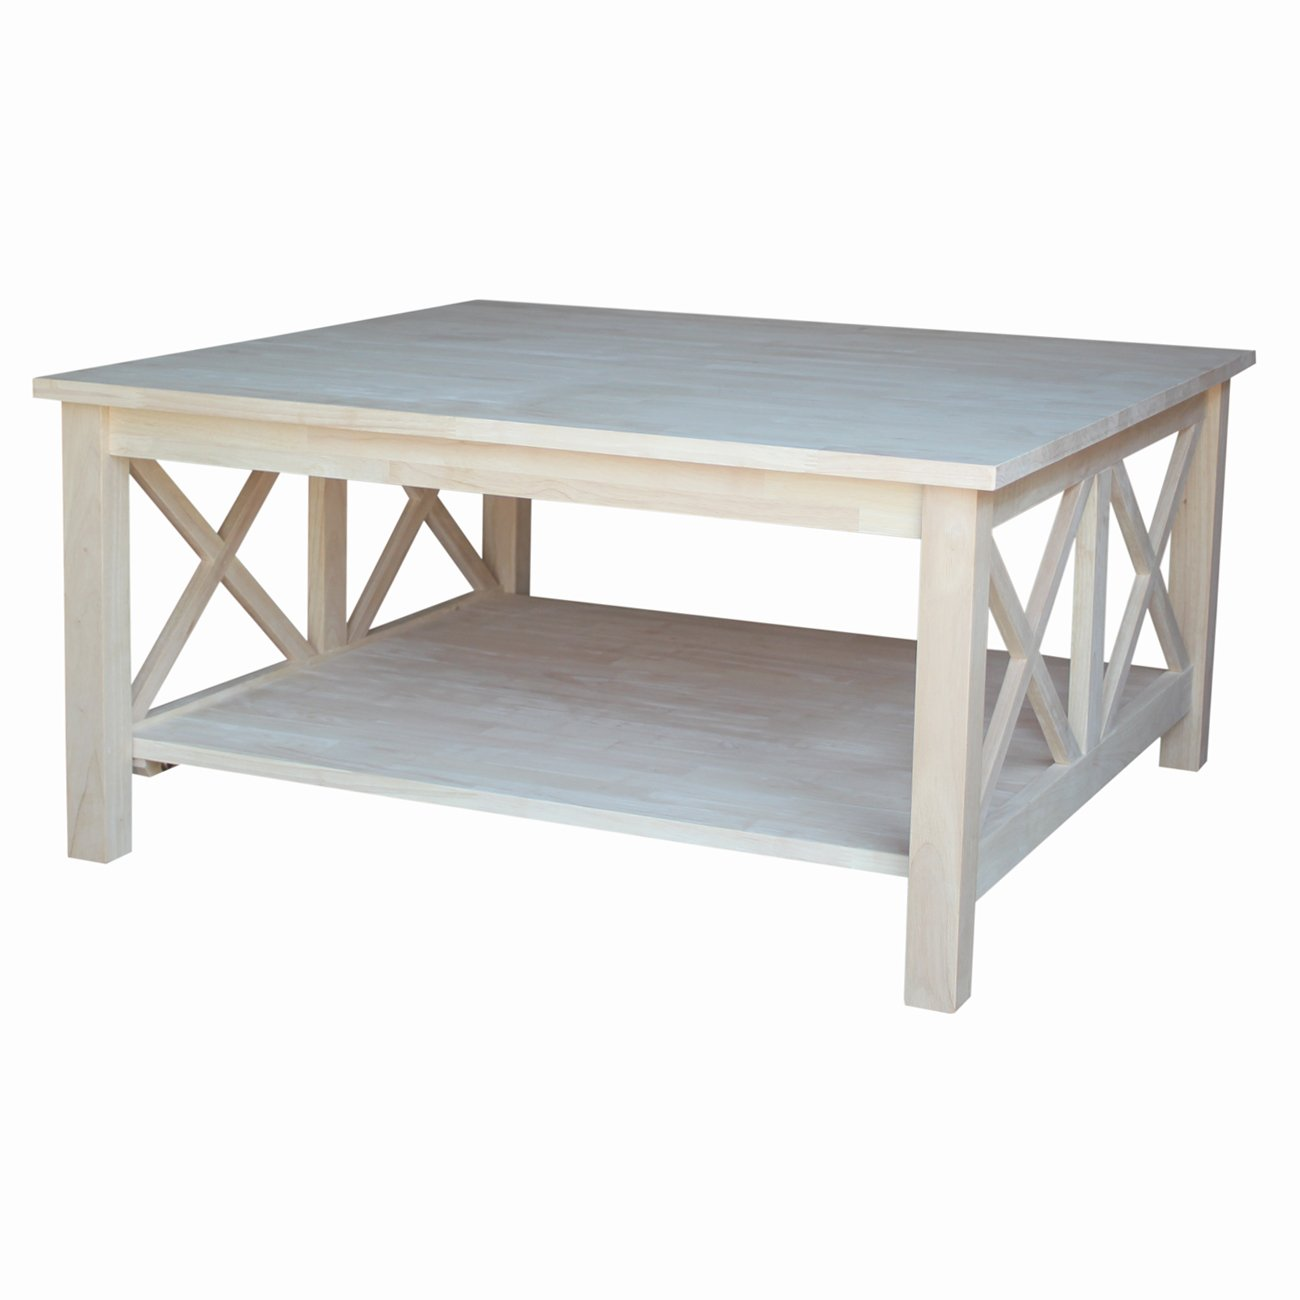 Amazon.com: International Concepts OT-70SC Hampton Square Coffee Table  Unfinished: Kitchen & Dining - Amazon.com: International Concepts OT-70SC Hampton Square Coffee